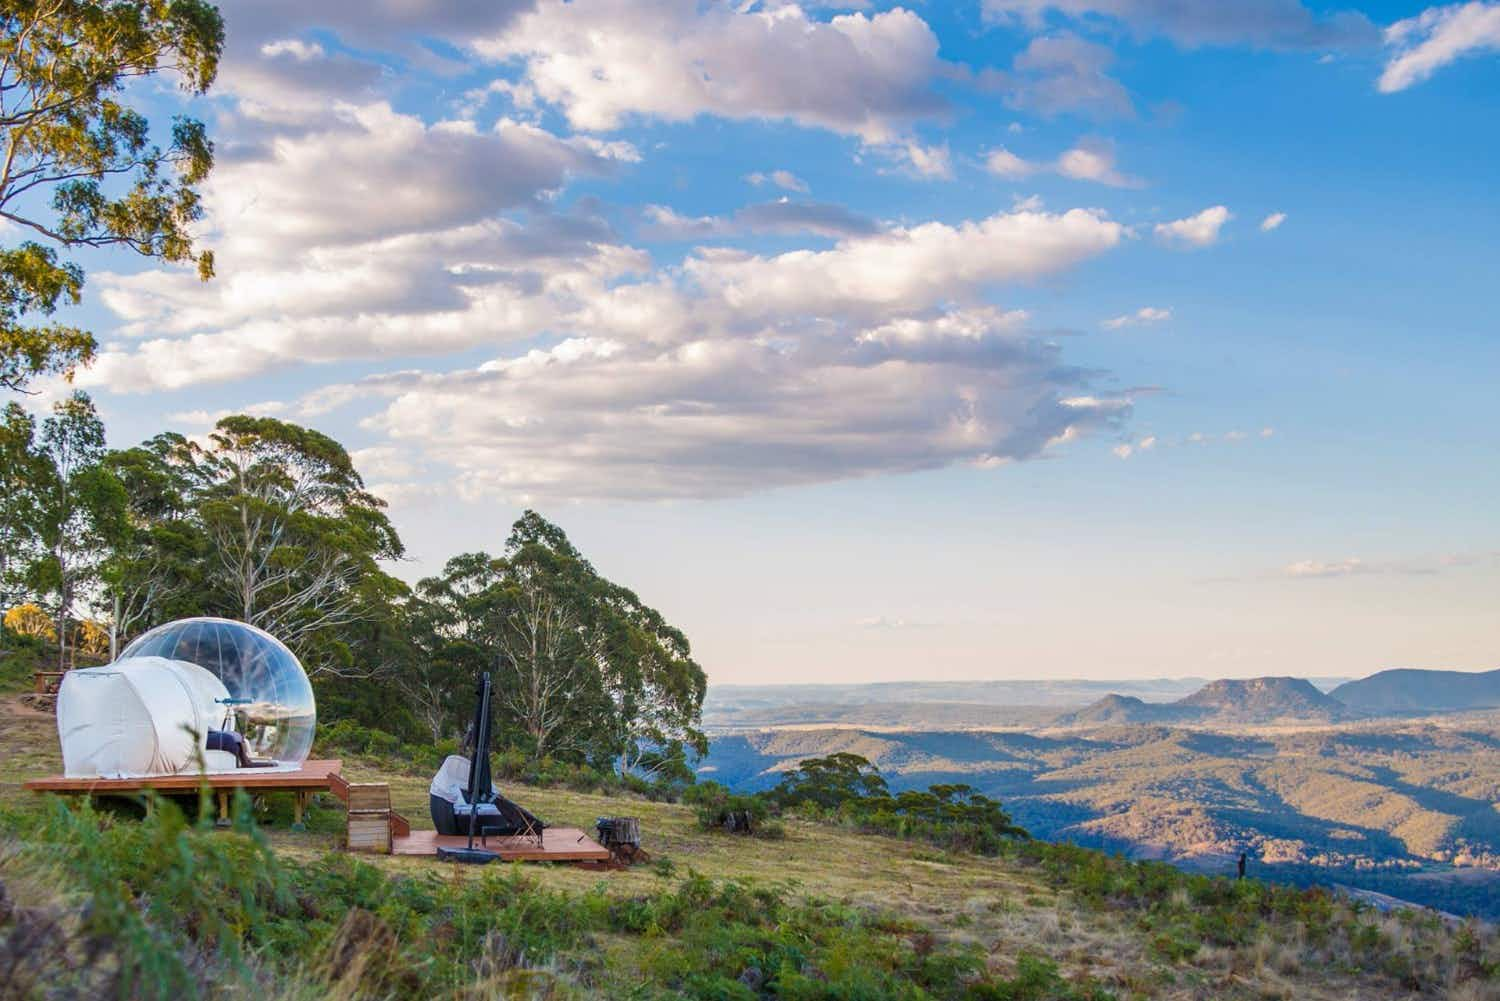 Australia's new bubble tents give the ultimate skygazing experience